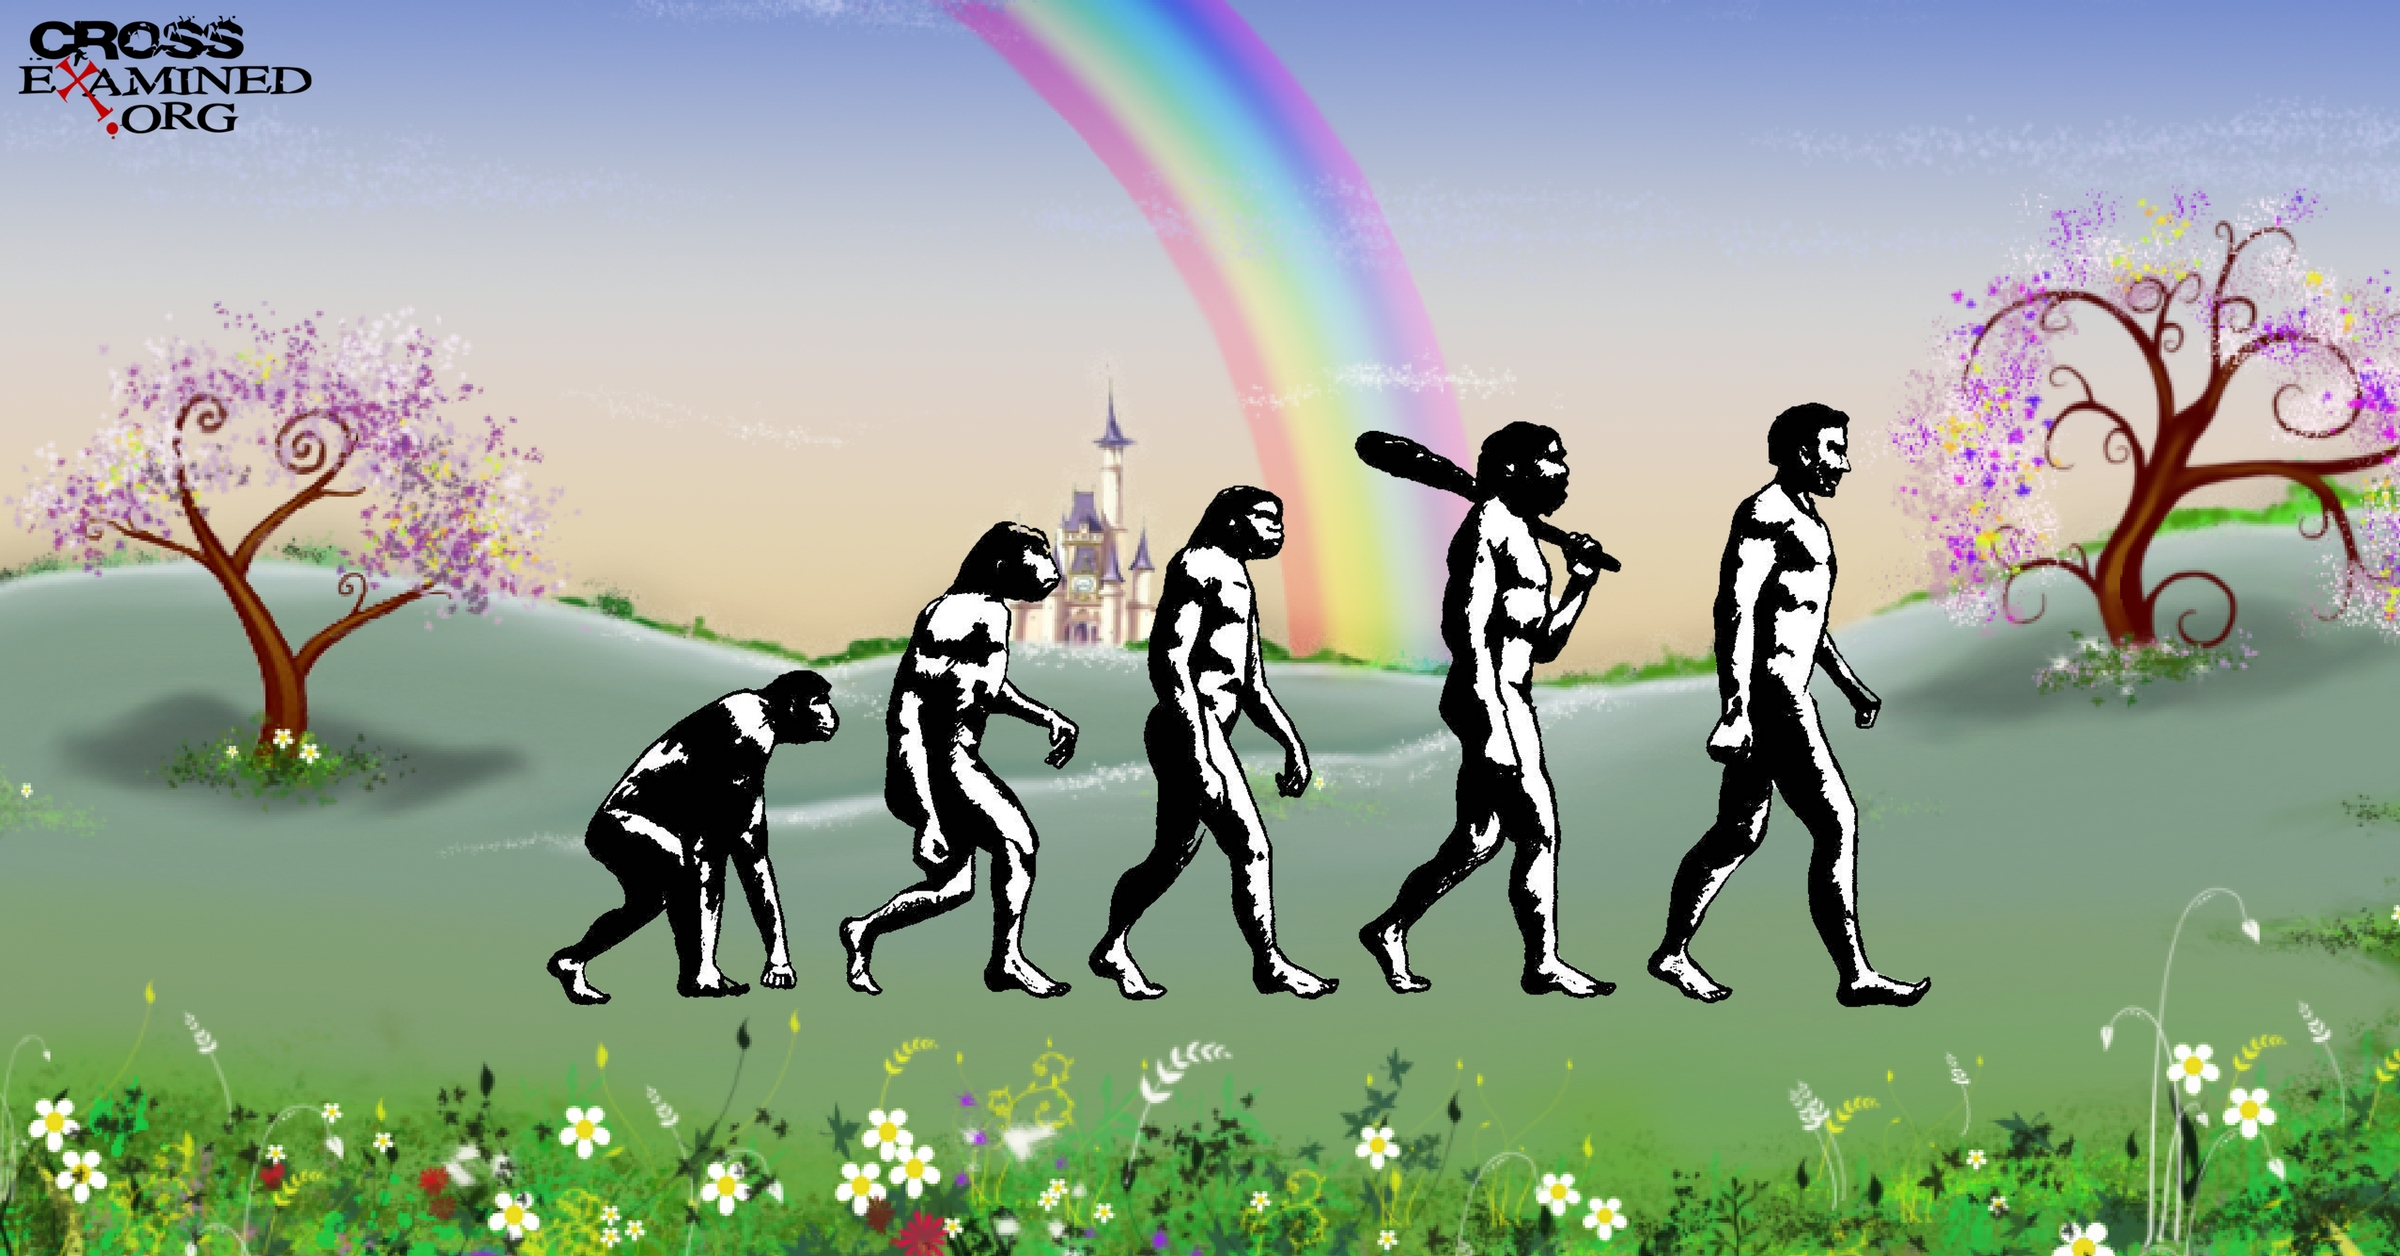 theistic evolution essay Theistic evolution essay sample theistic evolution can be considered a view or family of views concerning the compatibility of the scientific theory of evolution with the idea of god as creator of the universe and man.